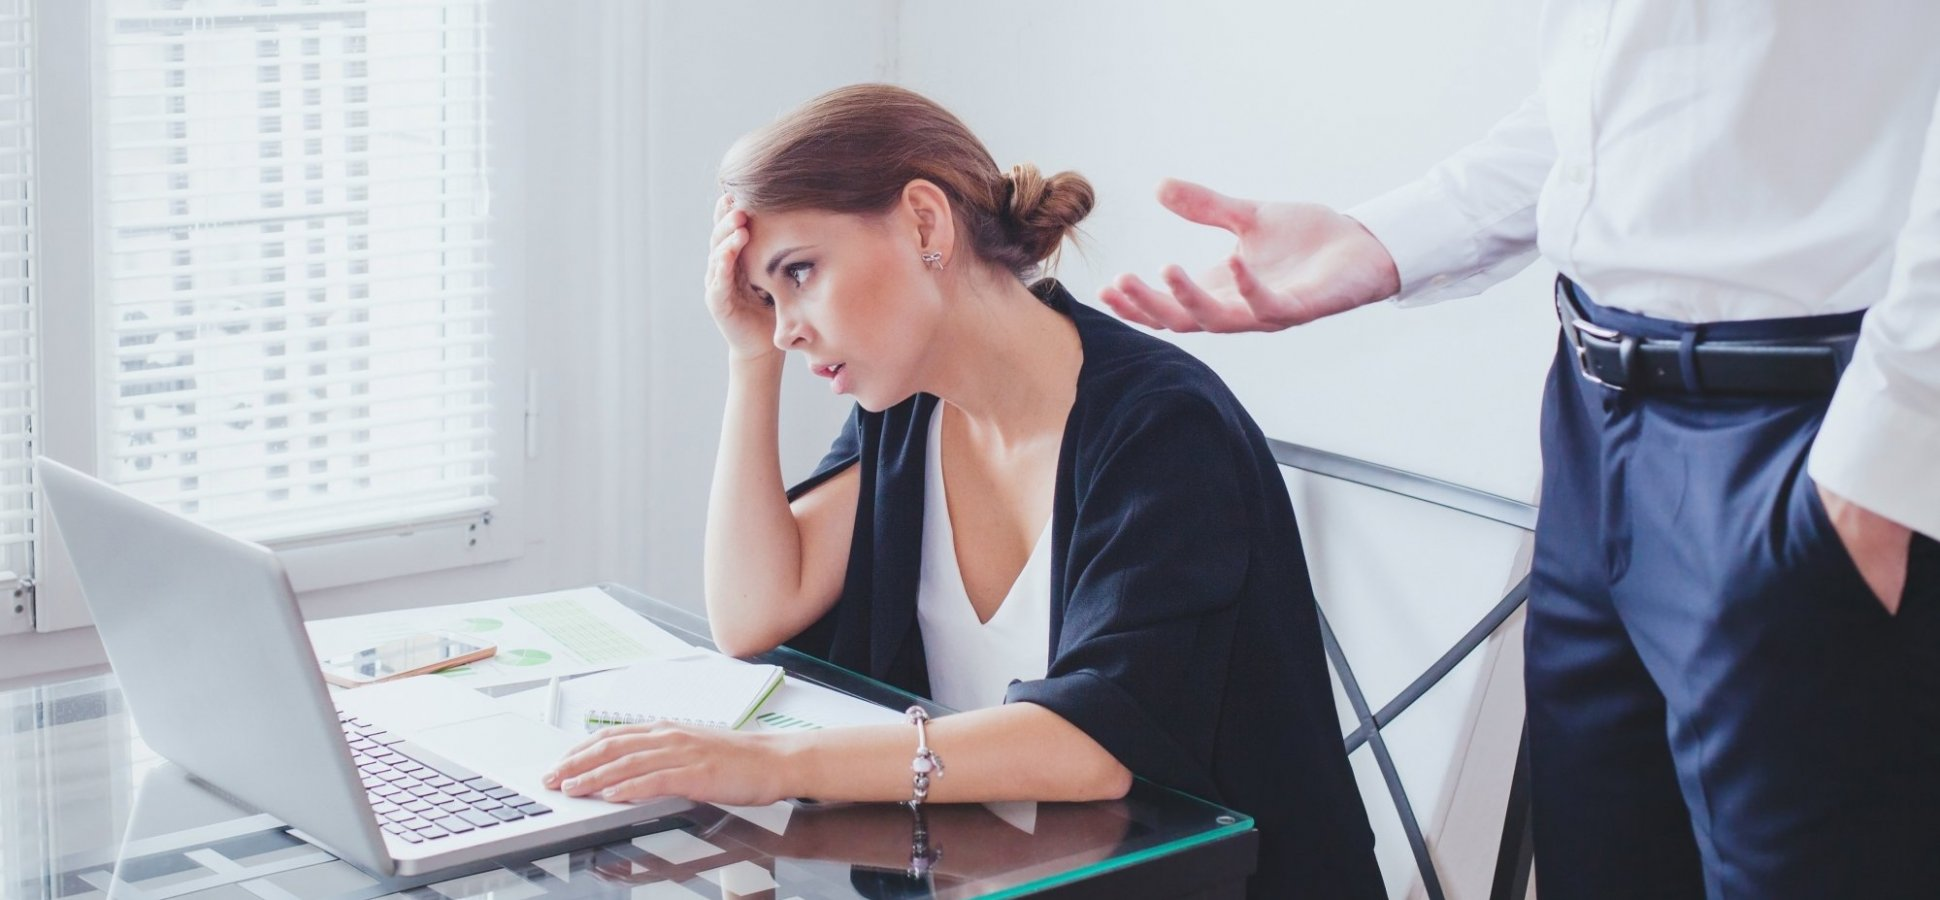 What to Do When Your Employee Starts Crying in the Office